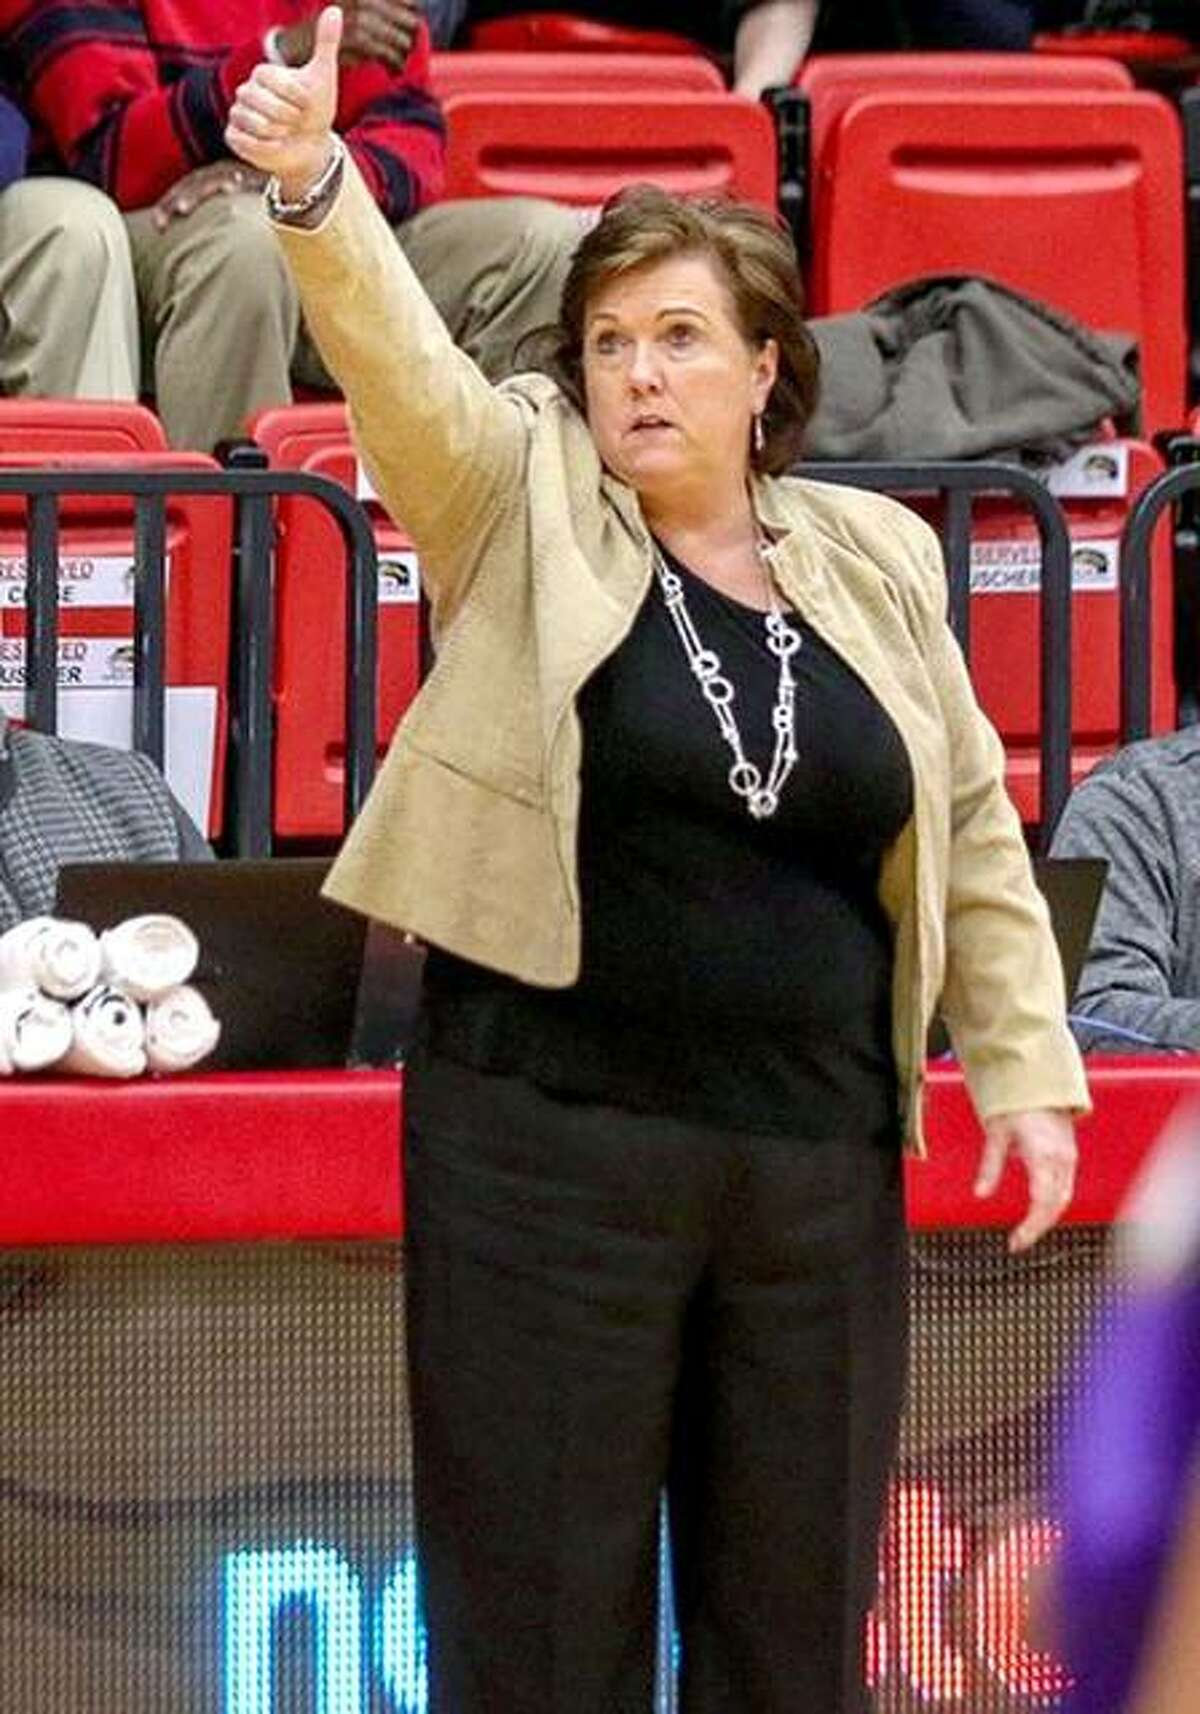 SIUE women's basketball coach gives a thumbs up to her team during a game last season. The Cougars' 2019-20 schedule has been released and Buscher calls the slate 'balanced.'